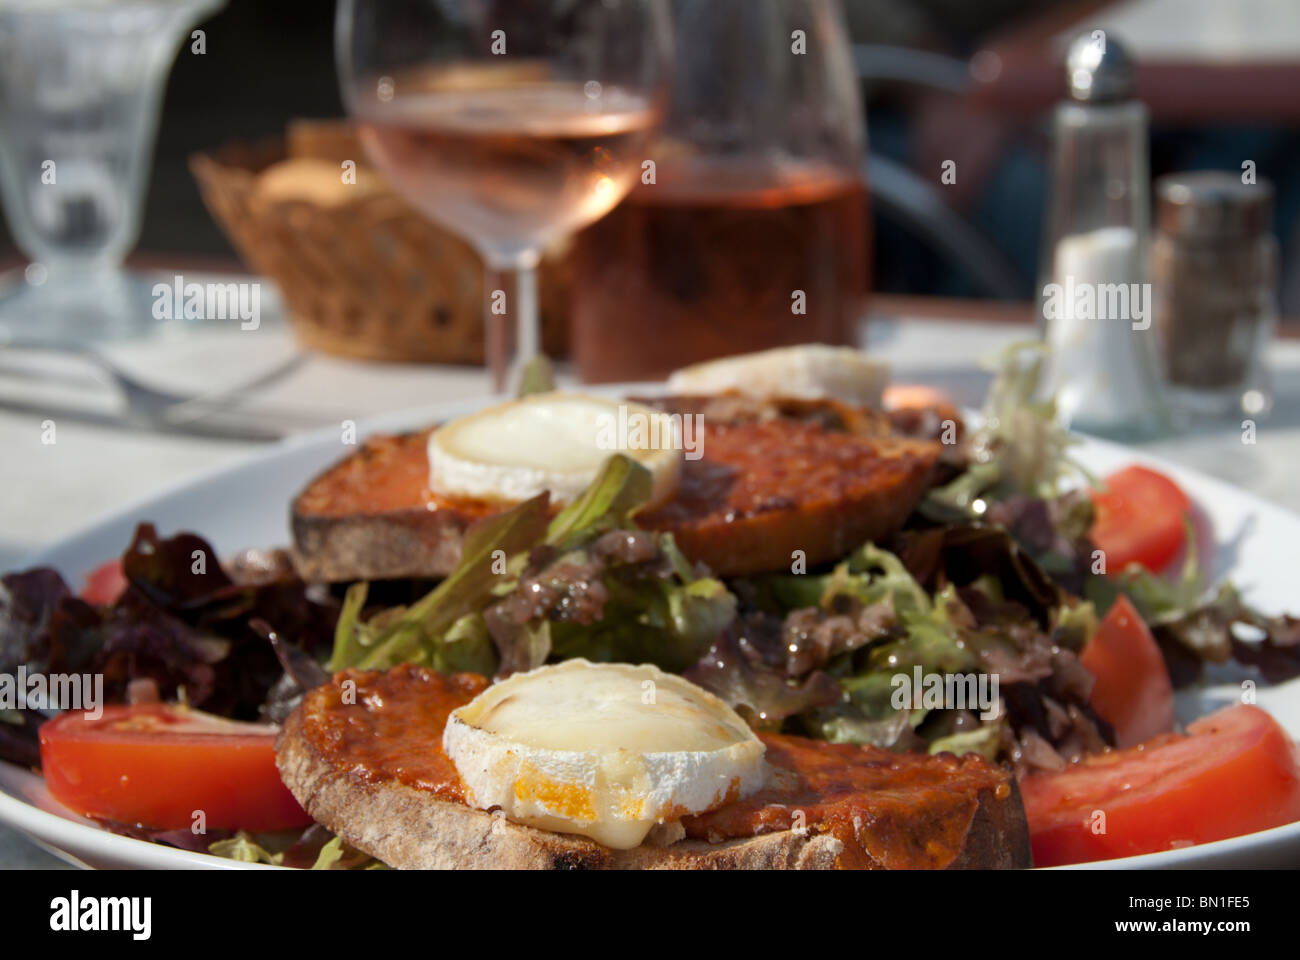 A lunch of Chevre Chaud salad at rose wine at an outdoor cafe in Montpellier. - Stock Image